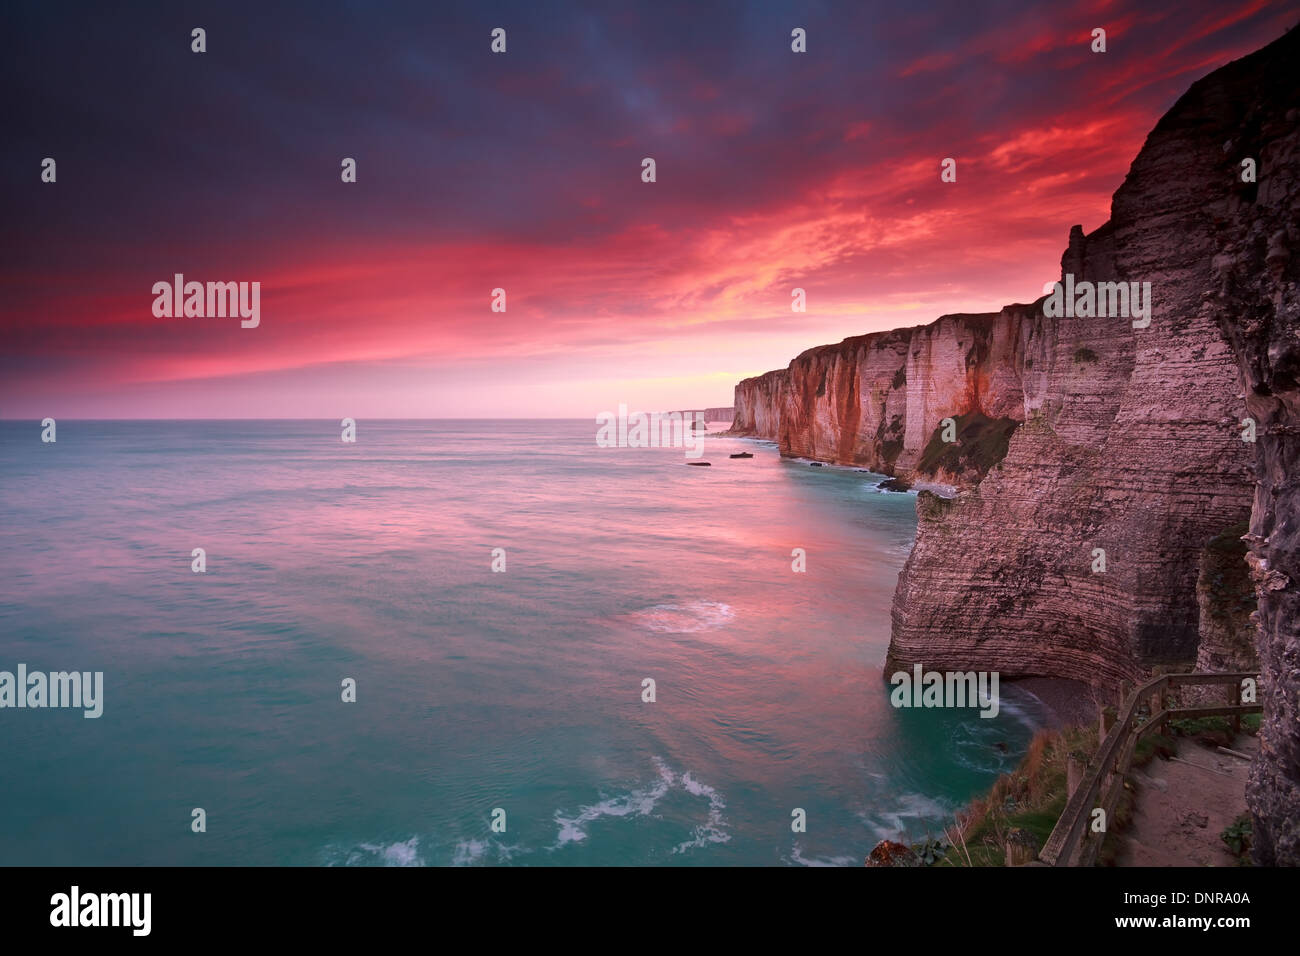 dramatic sunrise over ocean and cliffs, Etretat, France - Stock Image